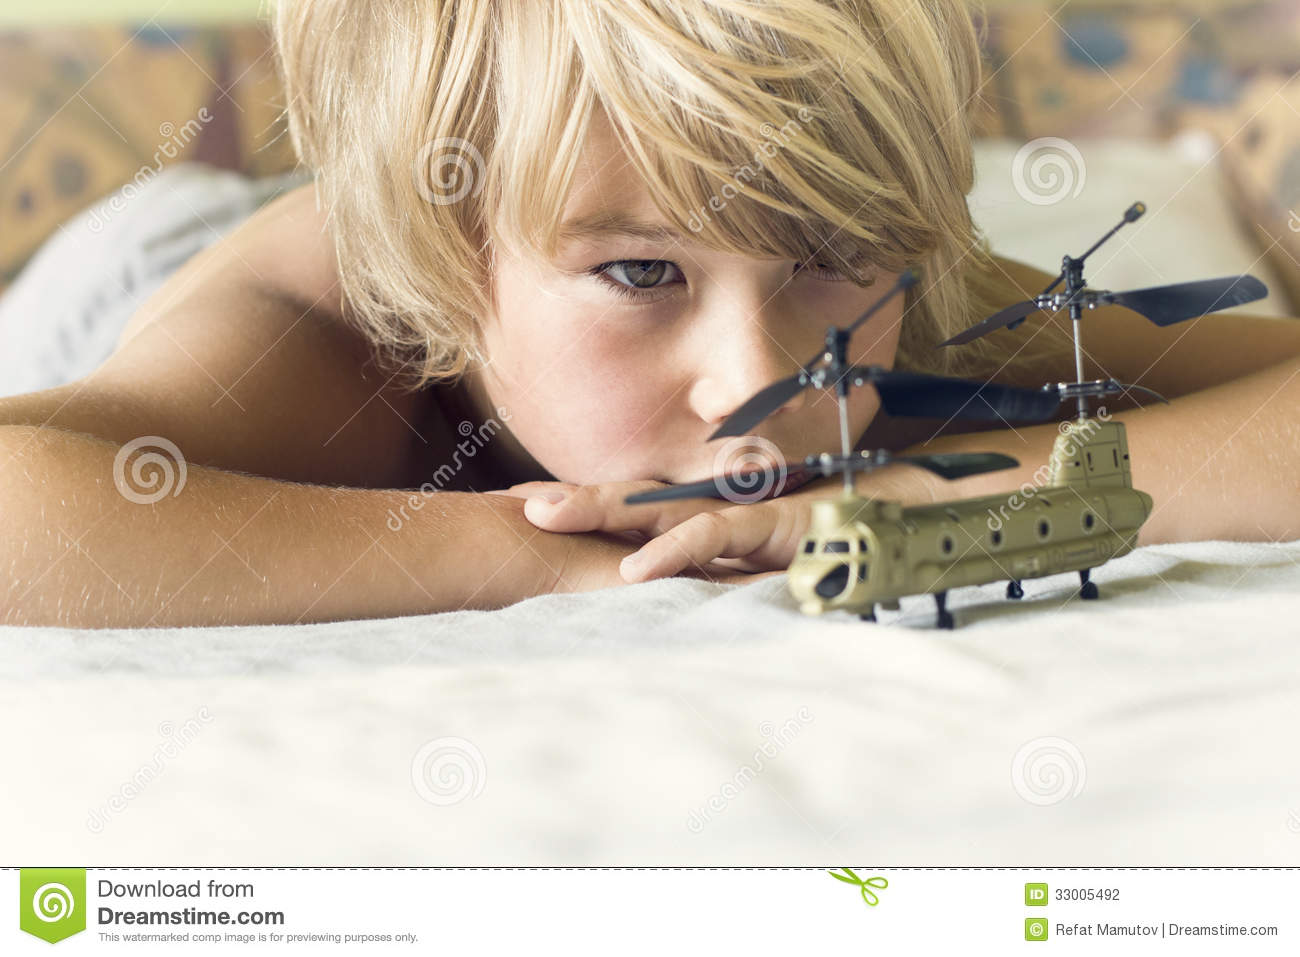 Boy plays with a helicopter